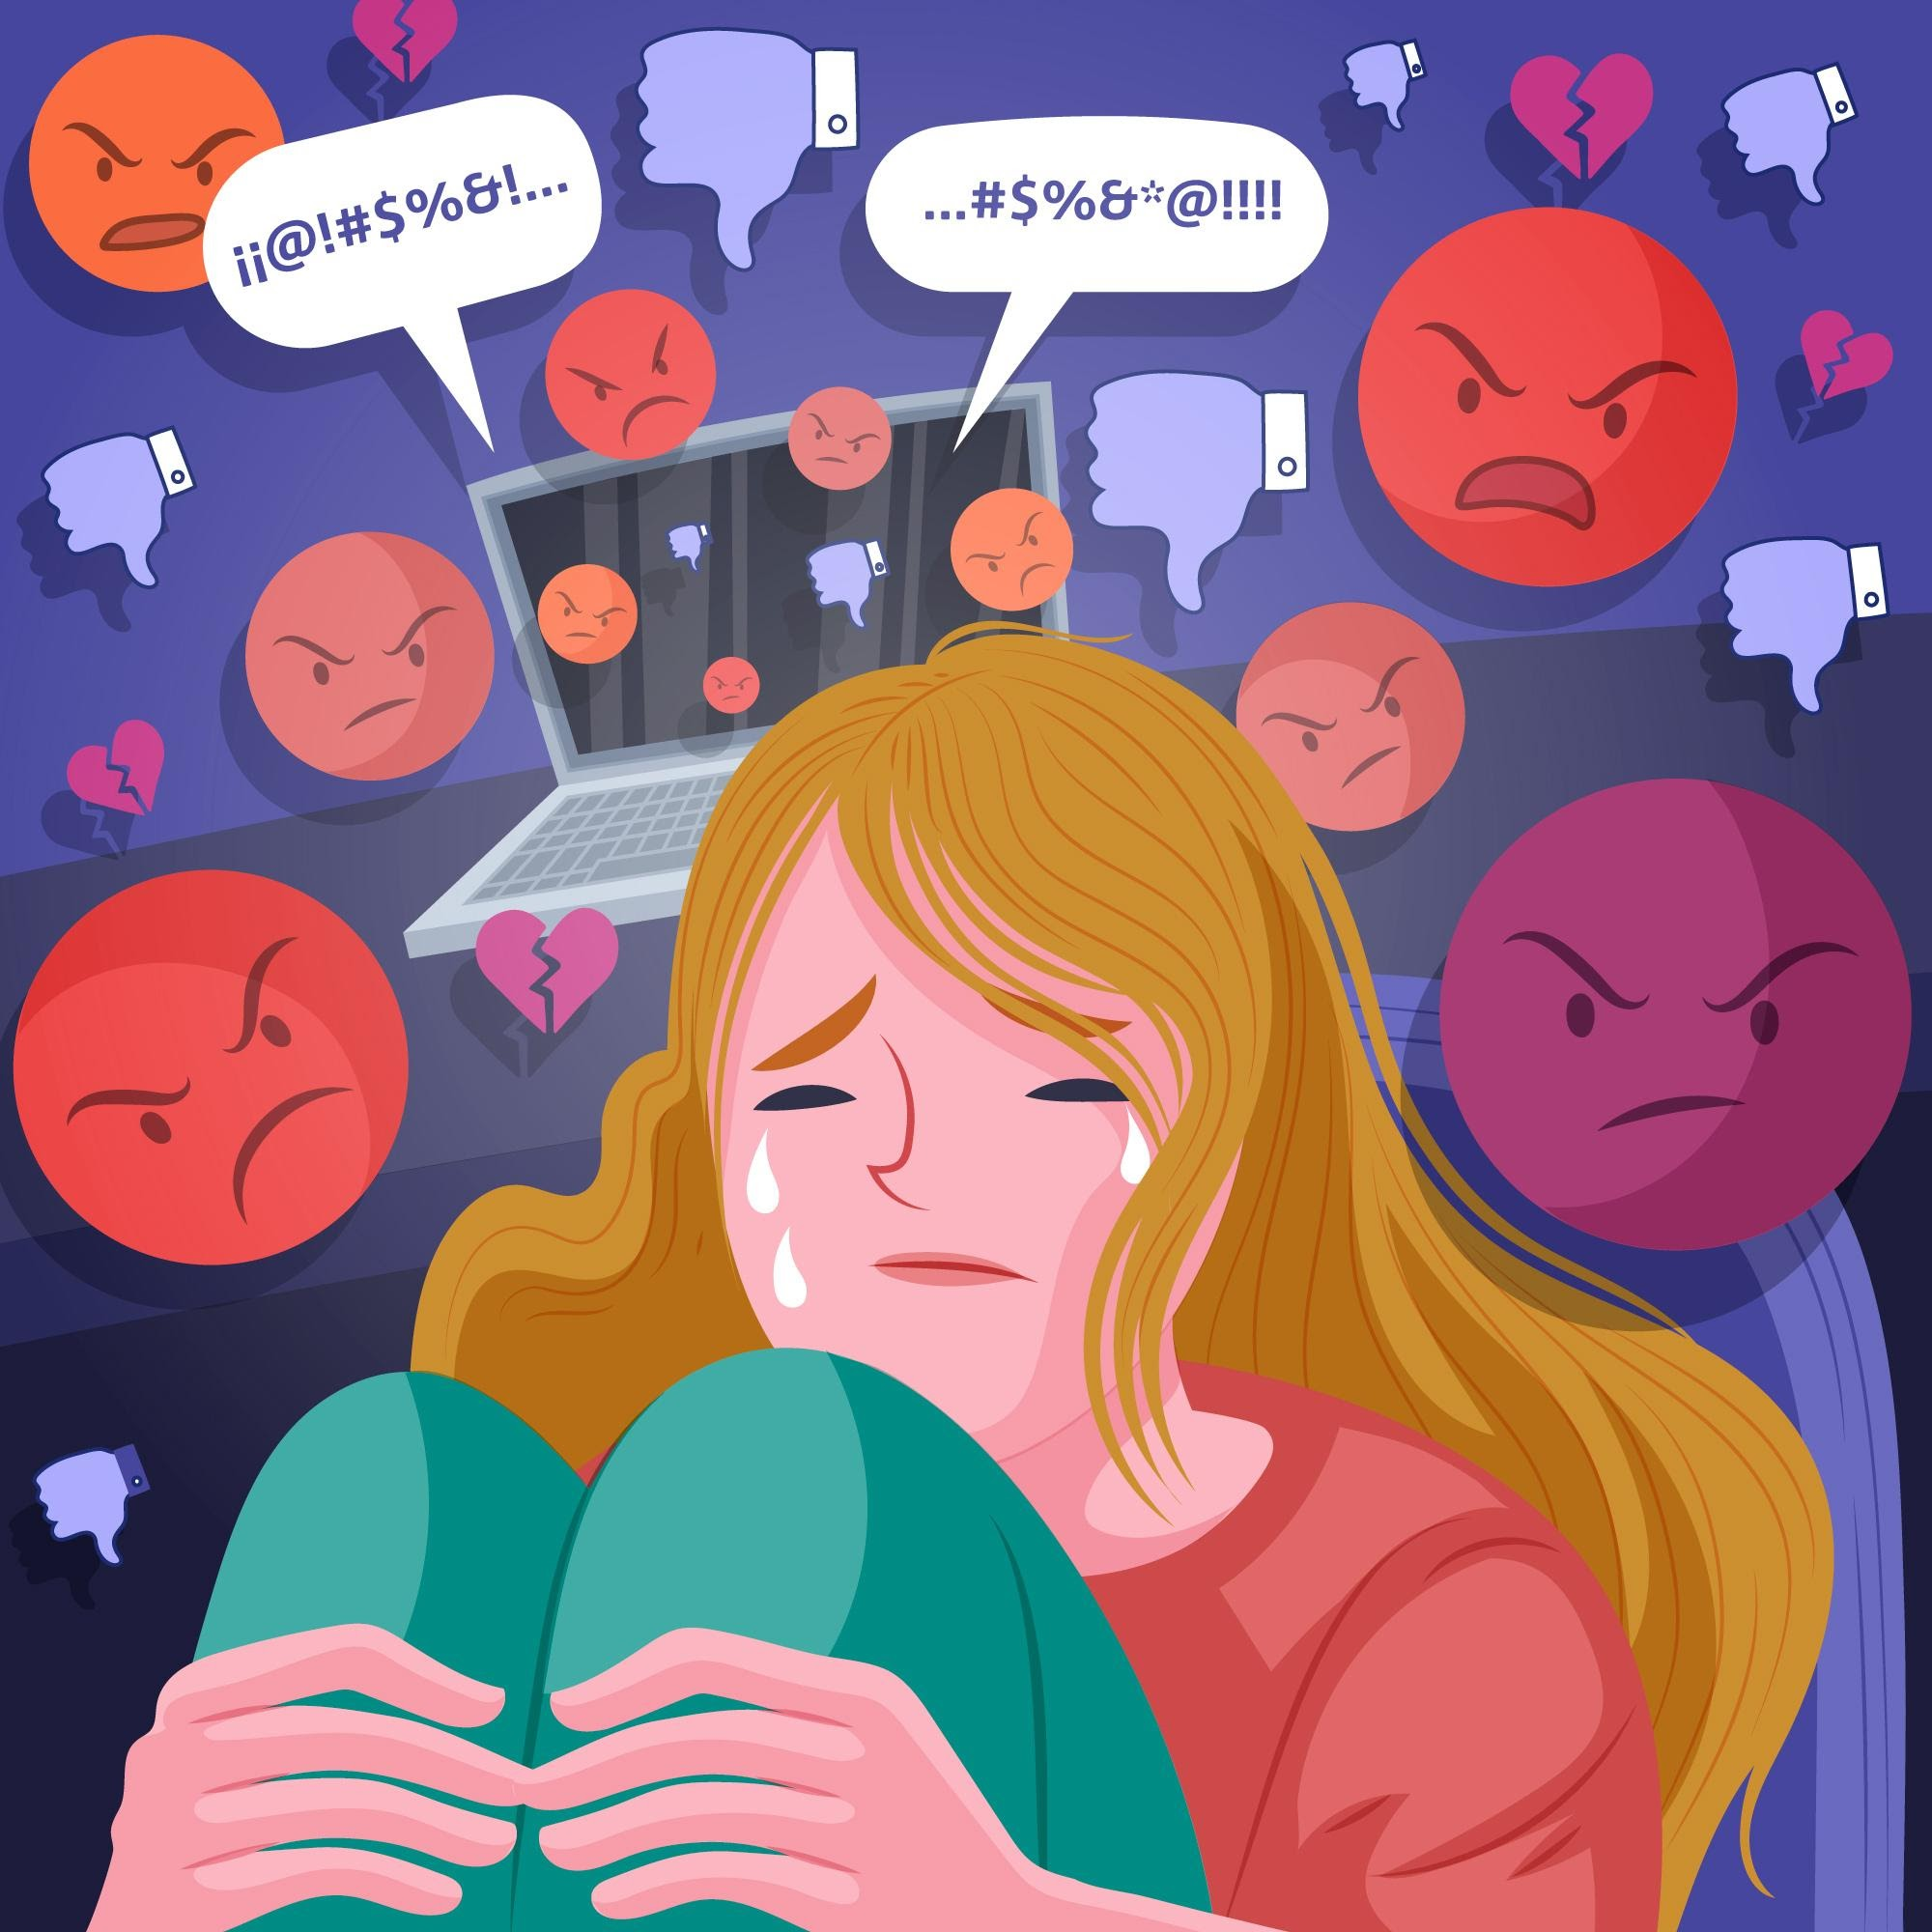 how does social media affect mental health - cyberbullying